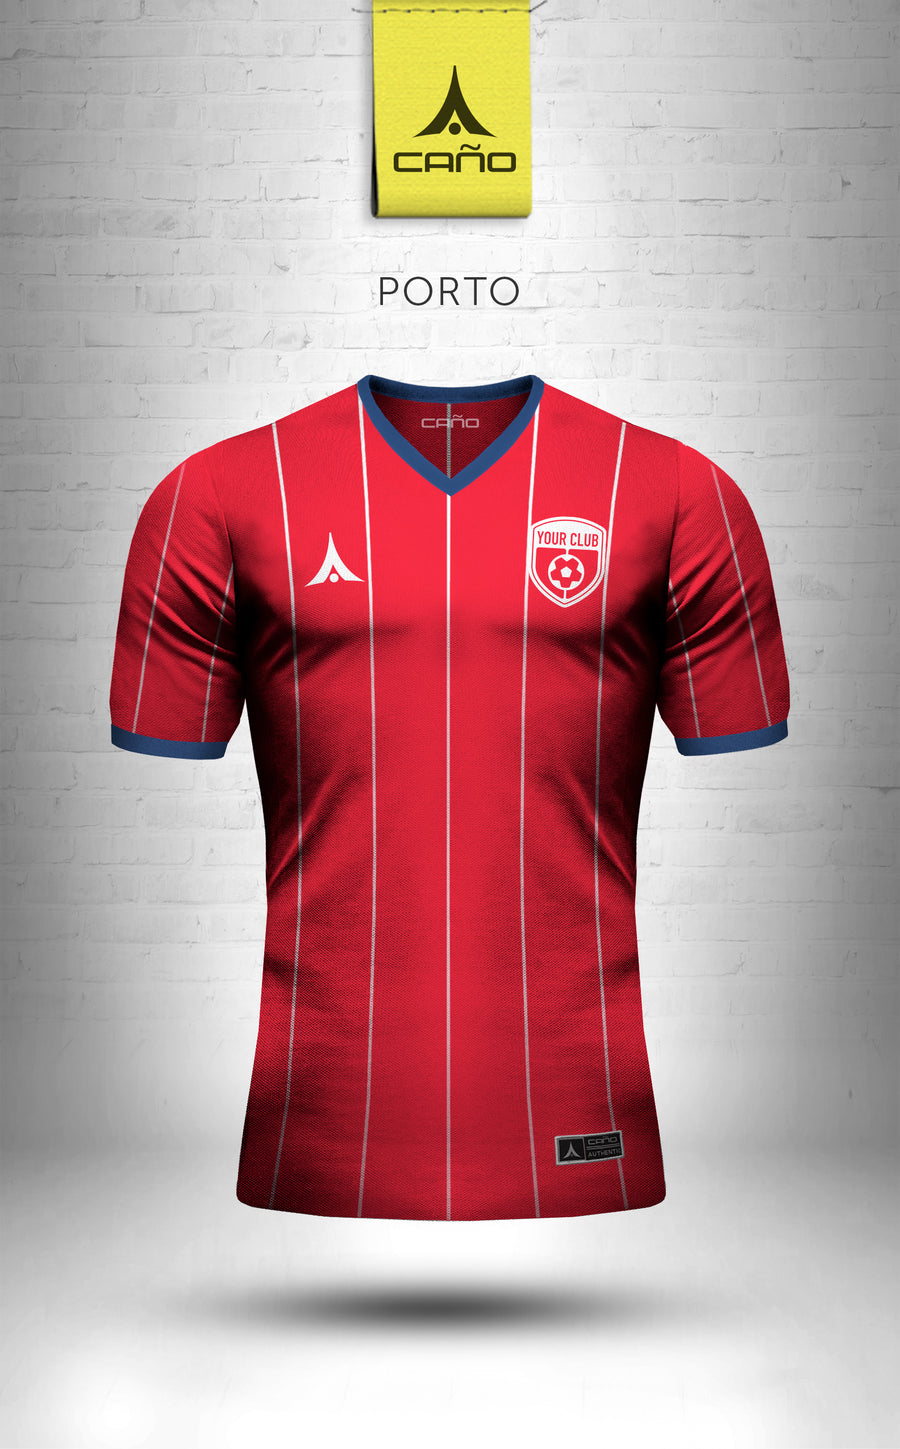 Porto in red/blue/white